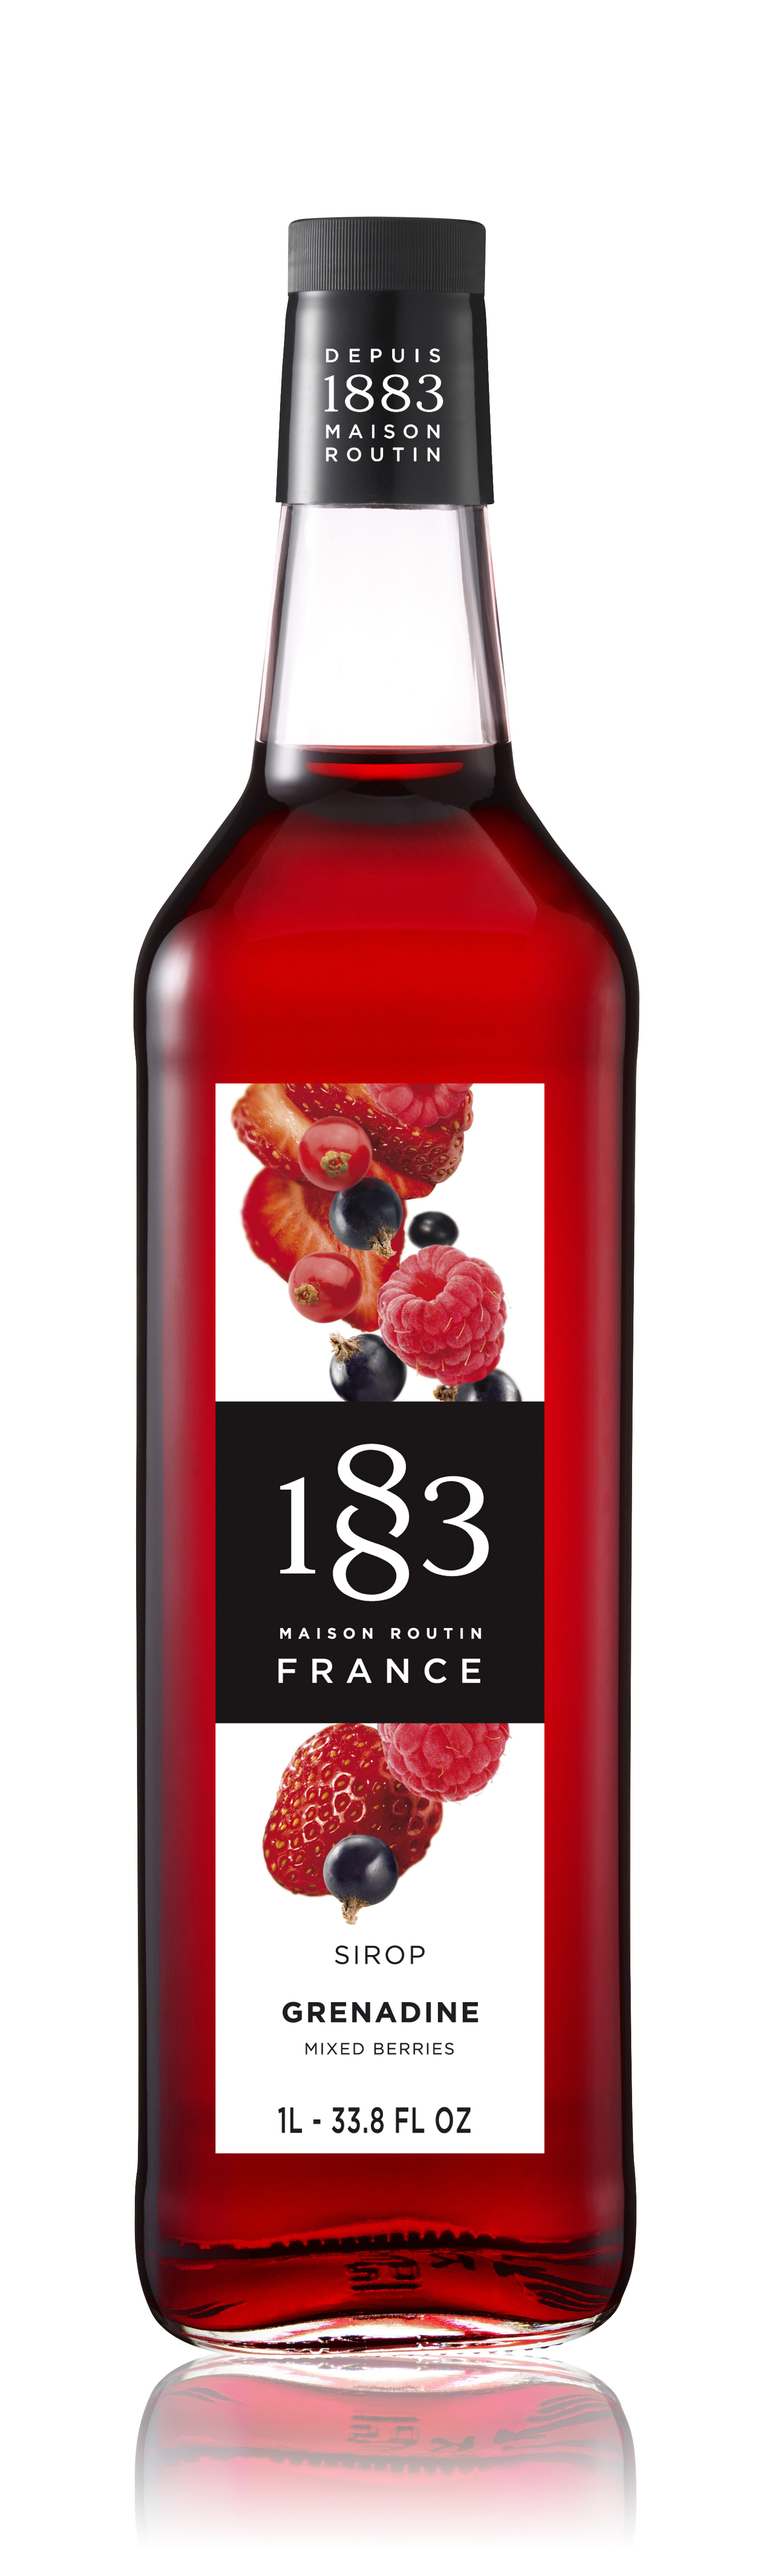 1883 Syrup Mixed Berries / Grenadine 1L Glass Bottle